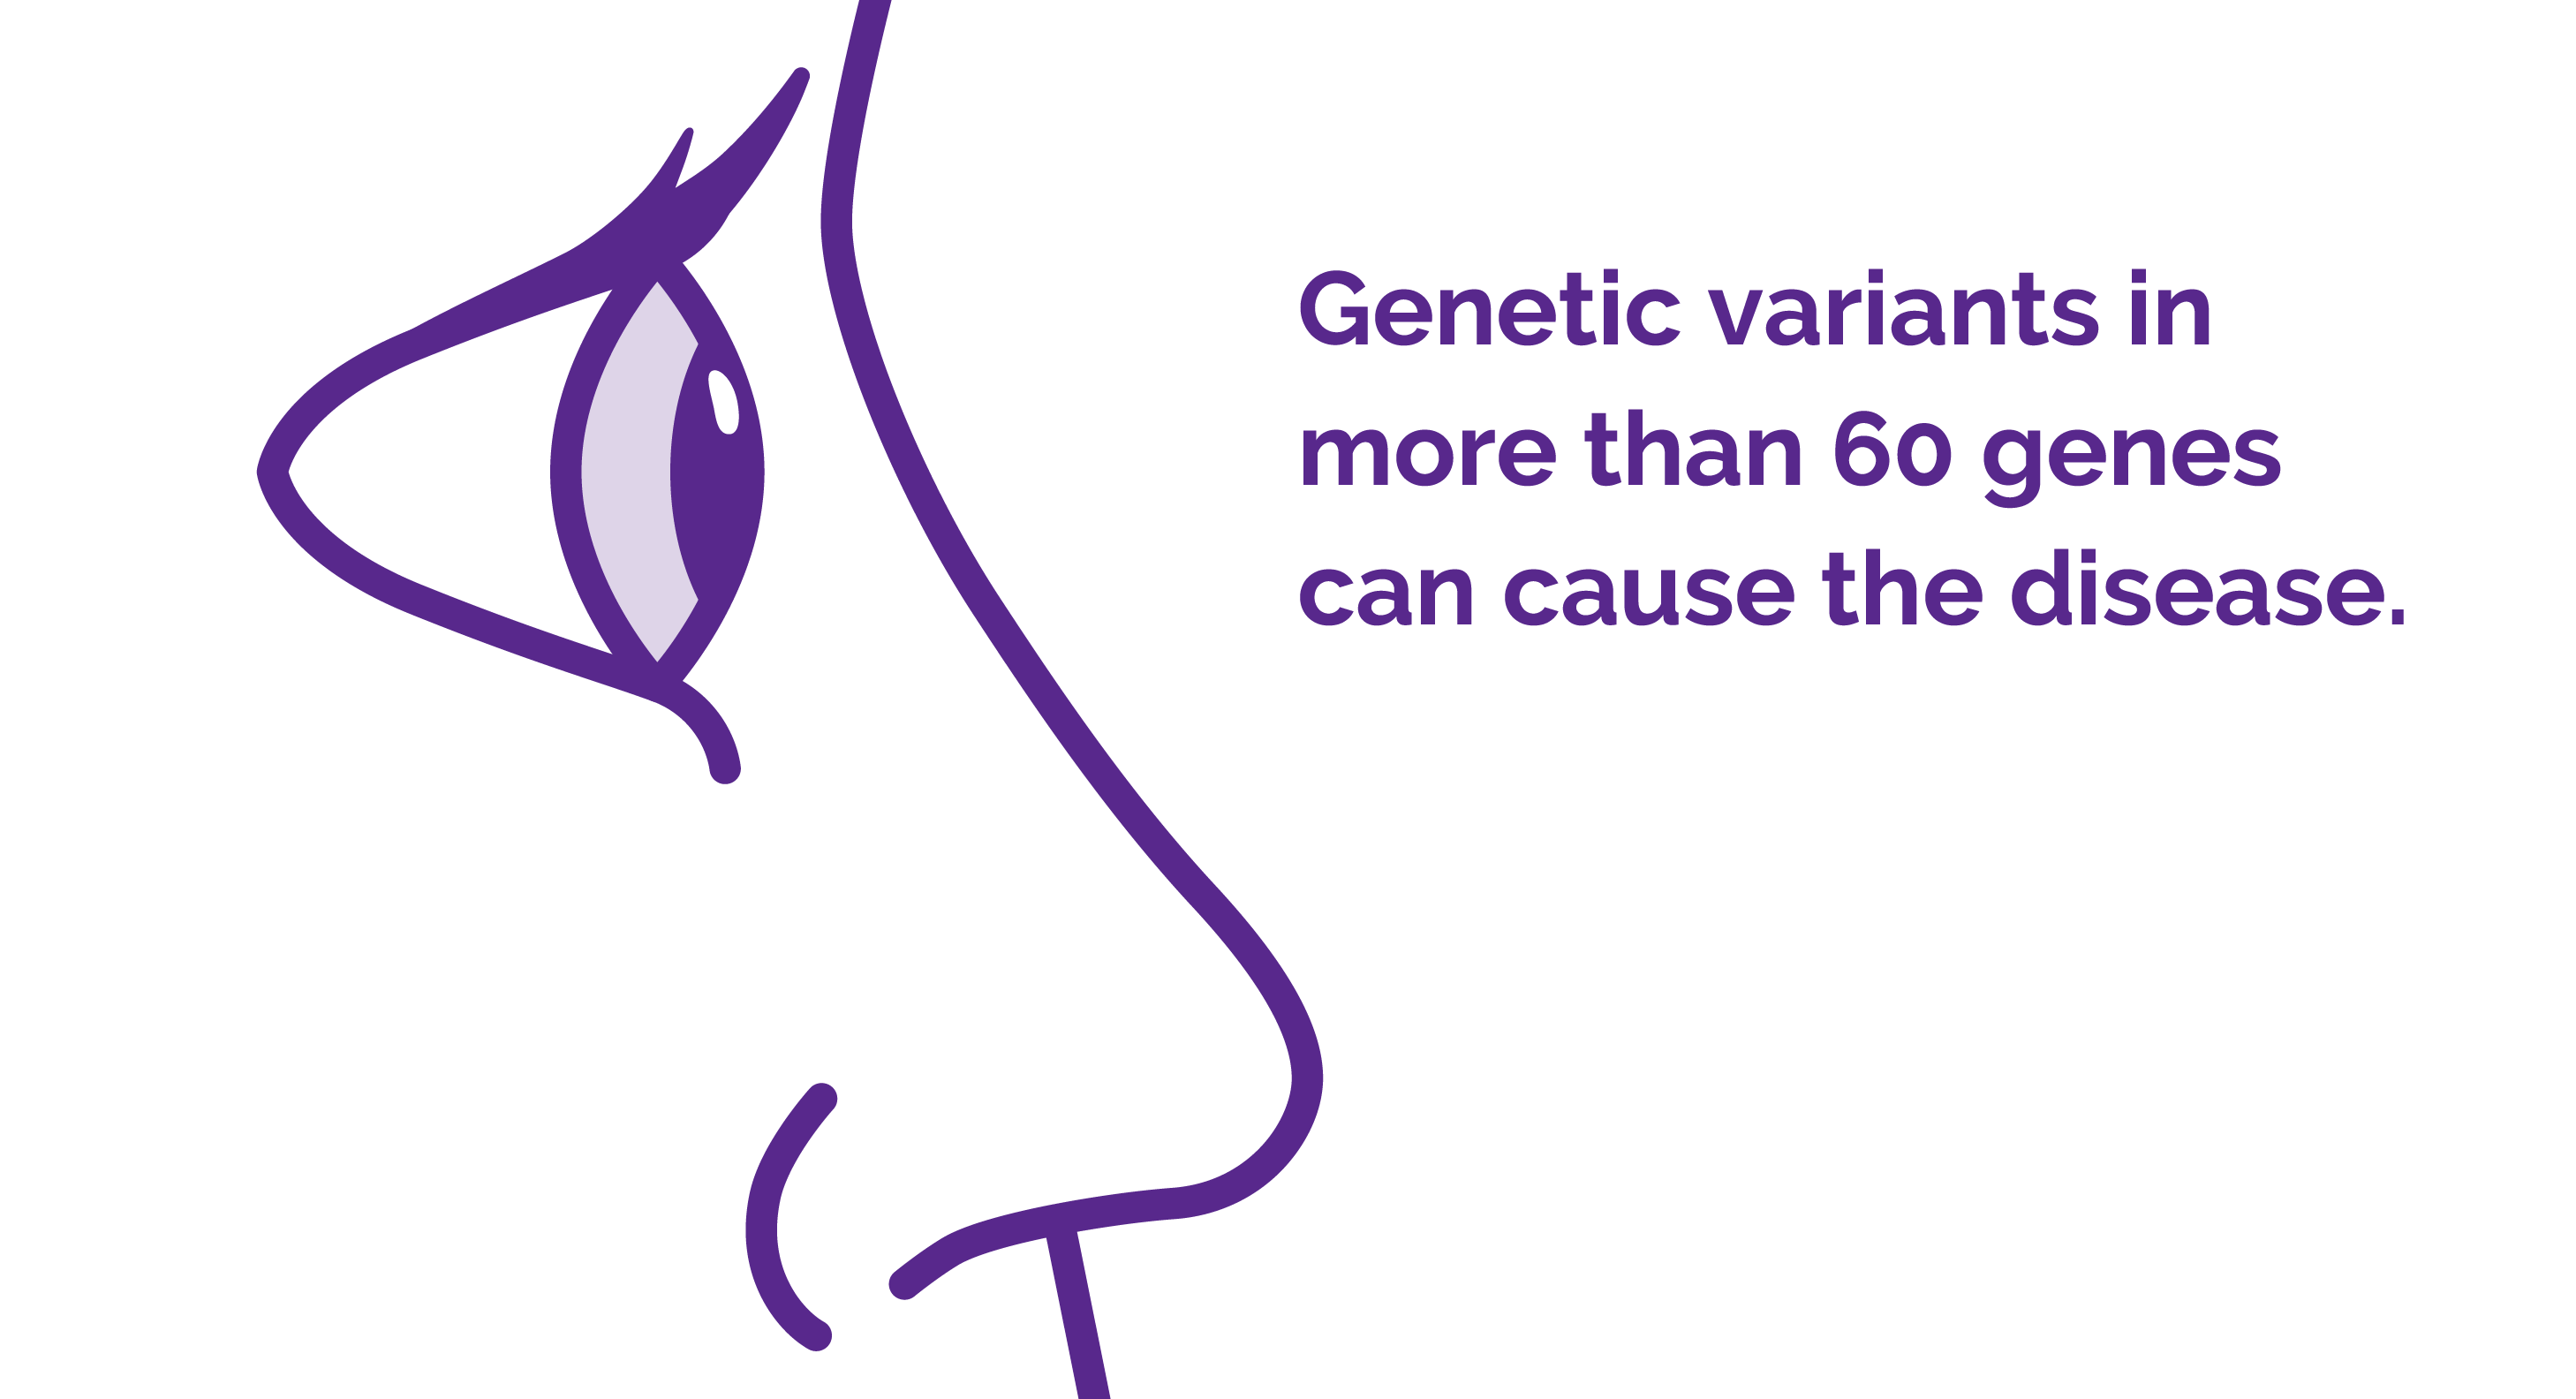 """A man's face looking at the words saying """"Genetic variants in more than 60 genes can cause the disease."""""""